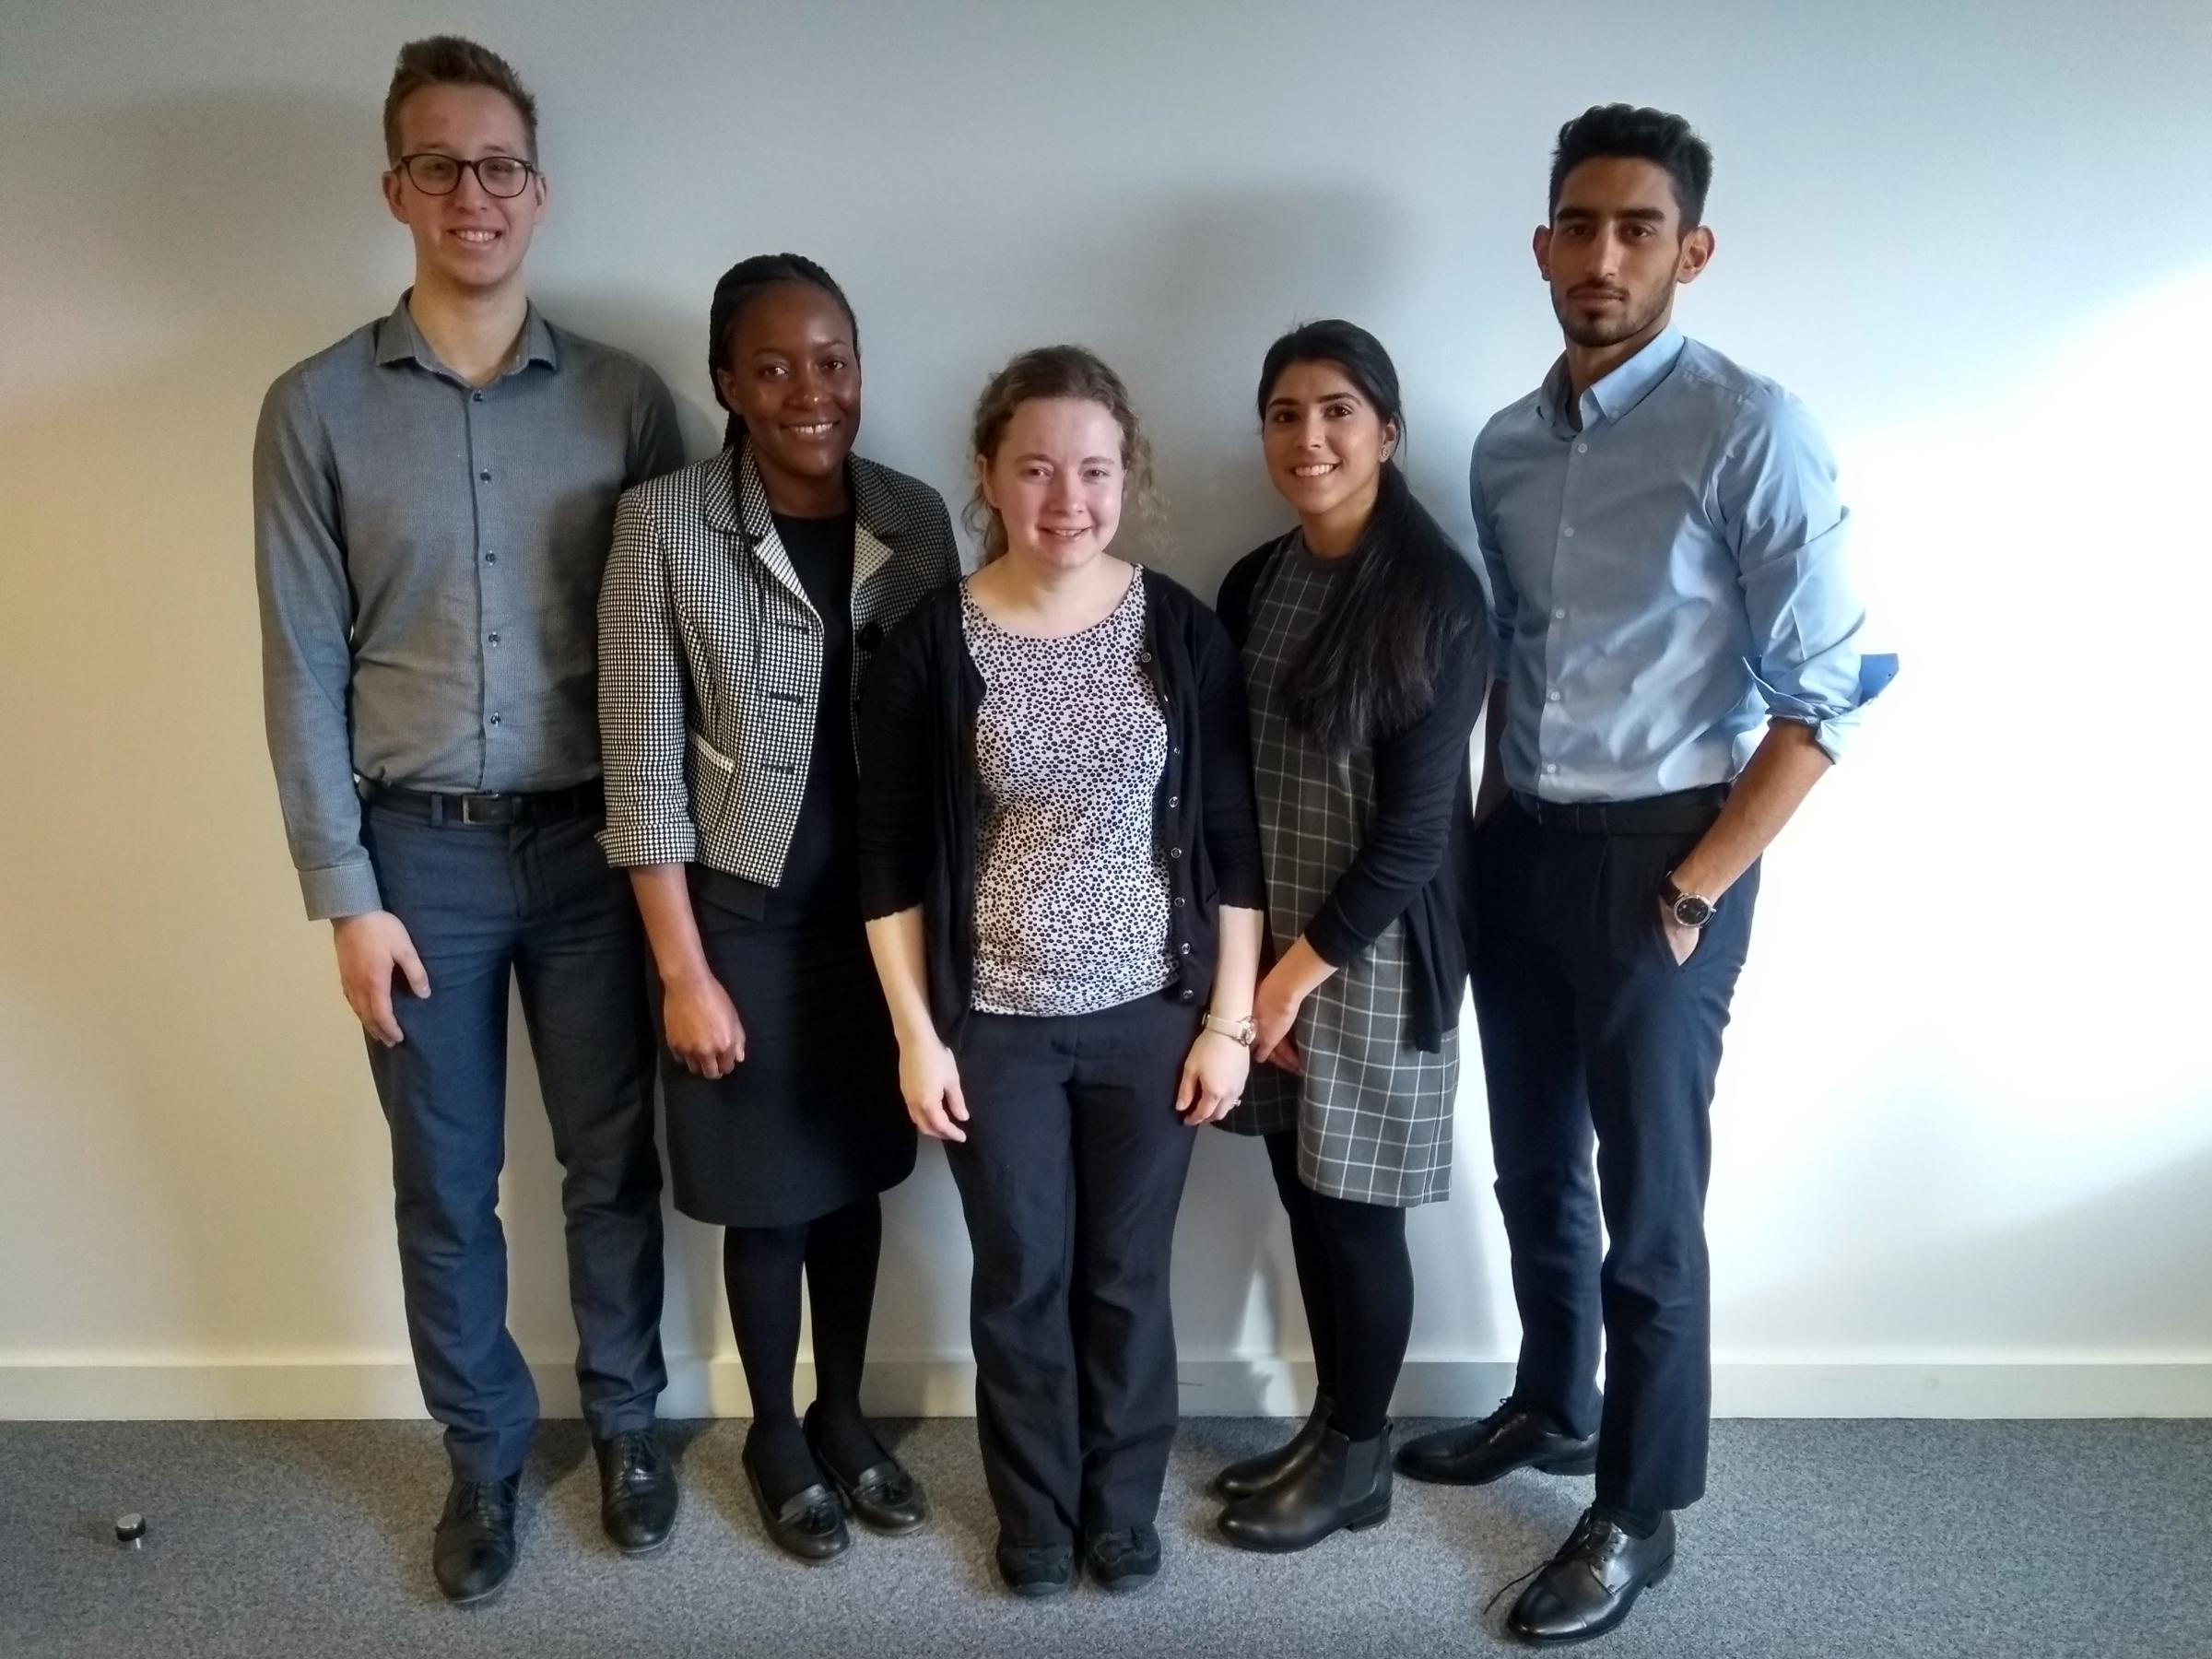 From left, Alex Yusuf, Fari Nzuma, Emma Price, Farhana Patel and Haseeb Khan